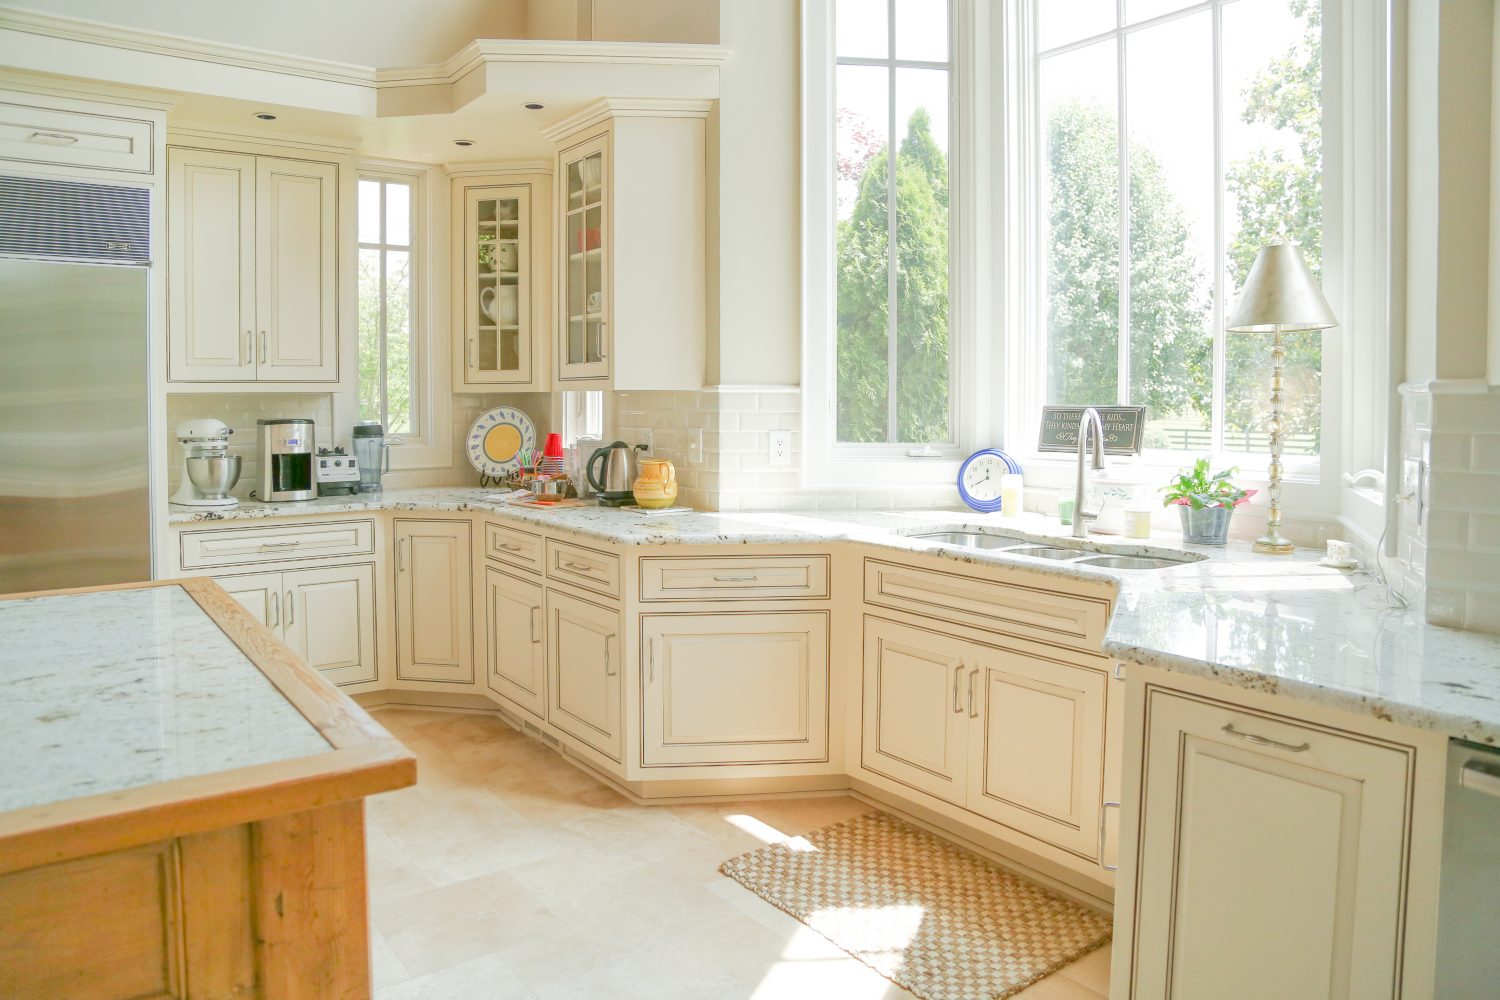 Glazed kitchen cabinets- Bella Tucker Decorative Finishes